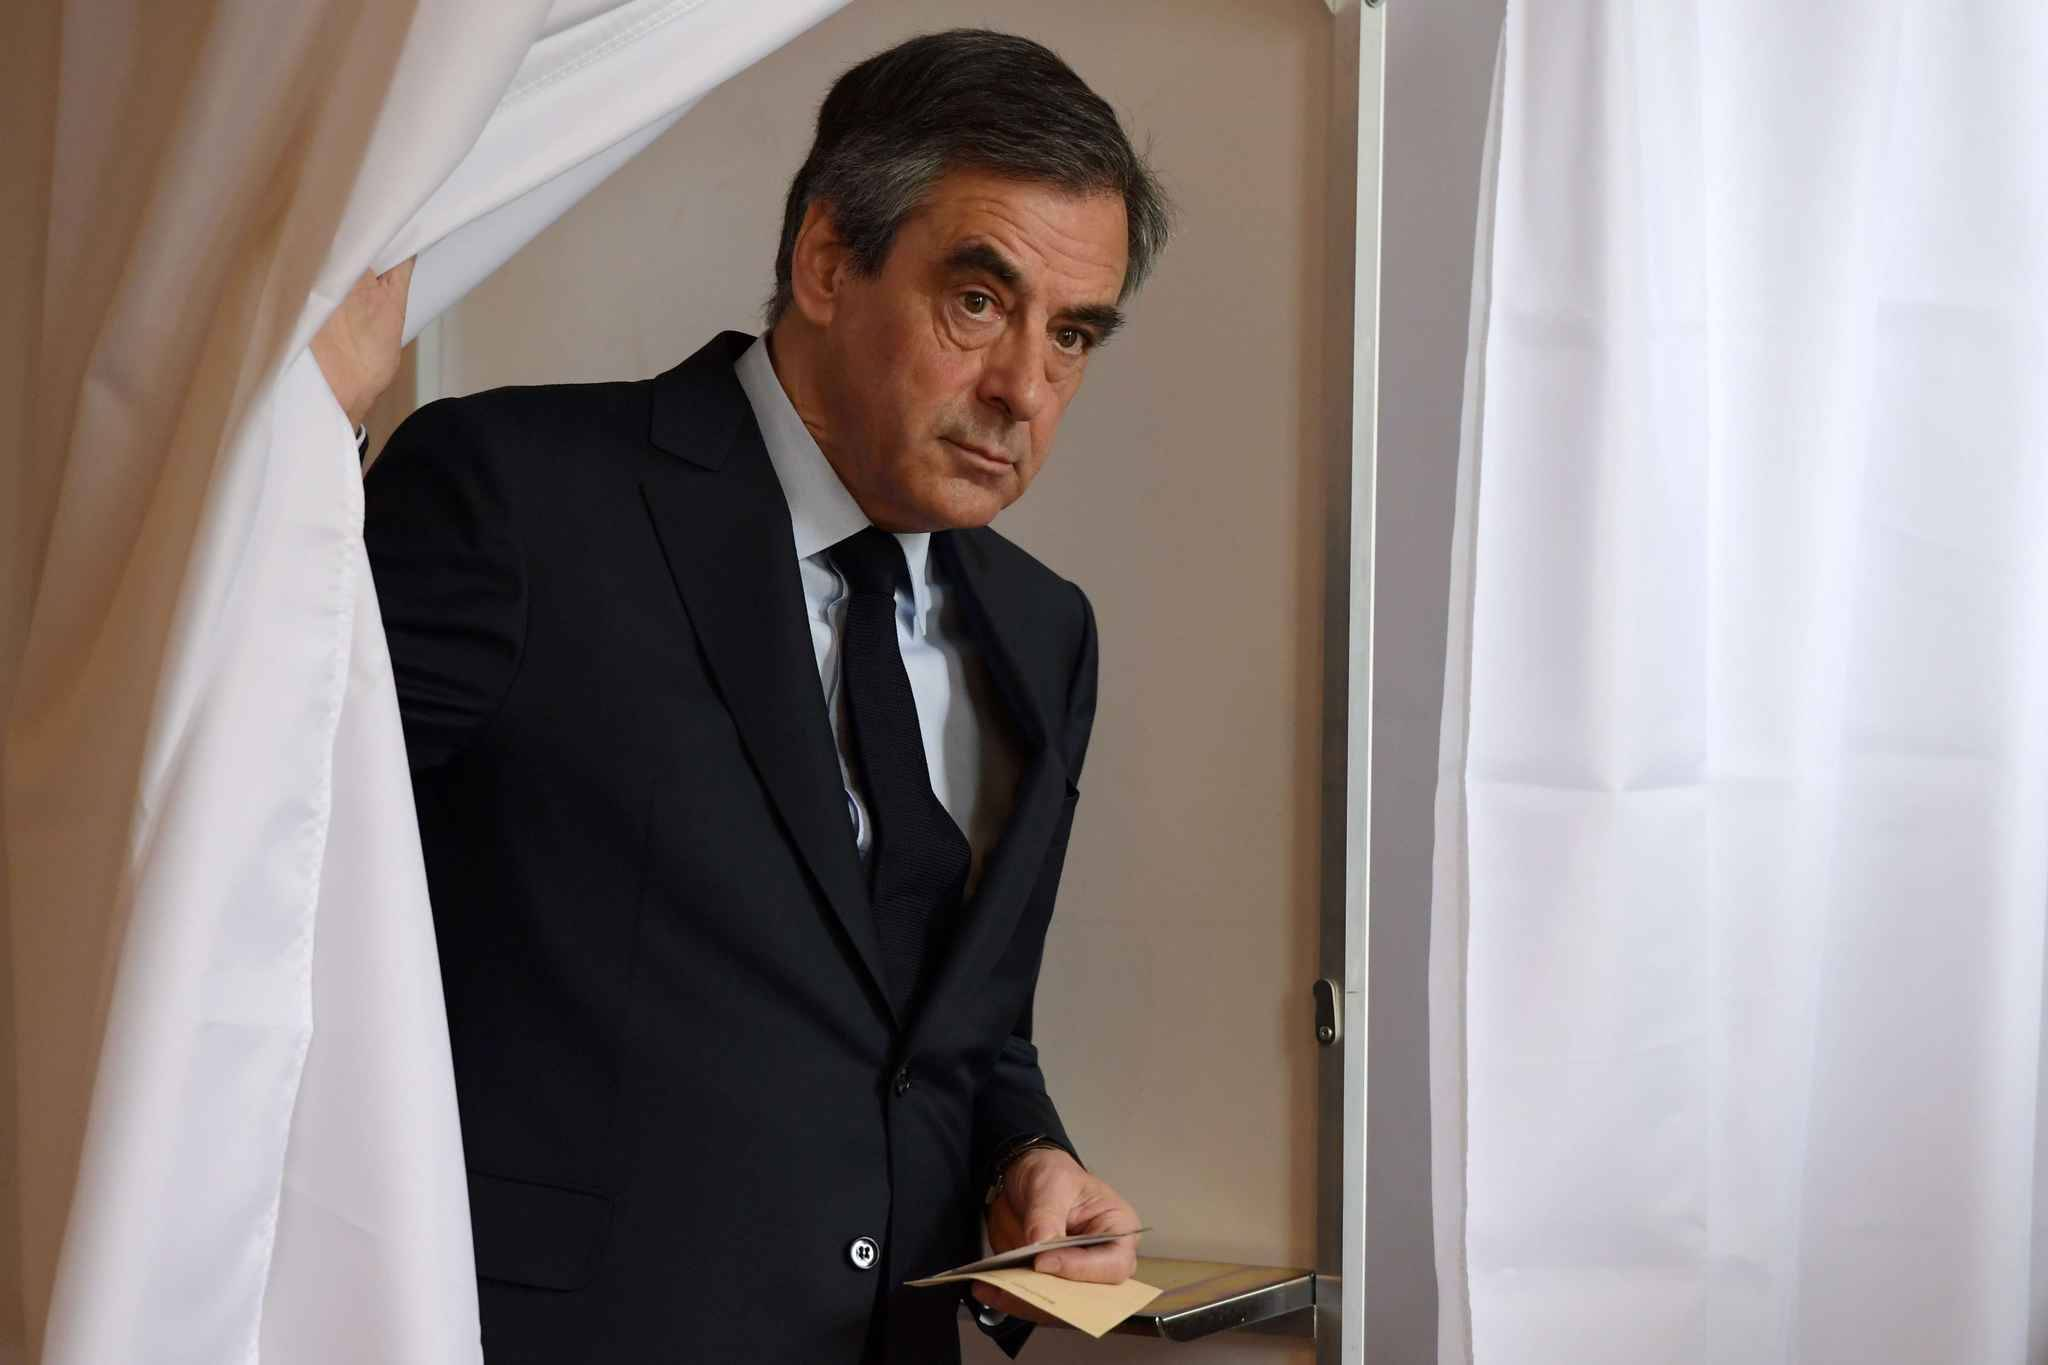 soup ons d 39 emplois fictifs fran ois fillon de retour devant les juges. Black Bedroom Furniture Sets. Home Design Ideas